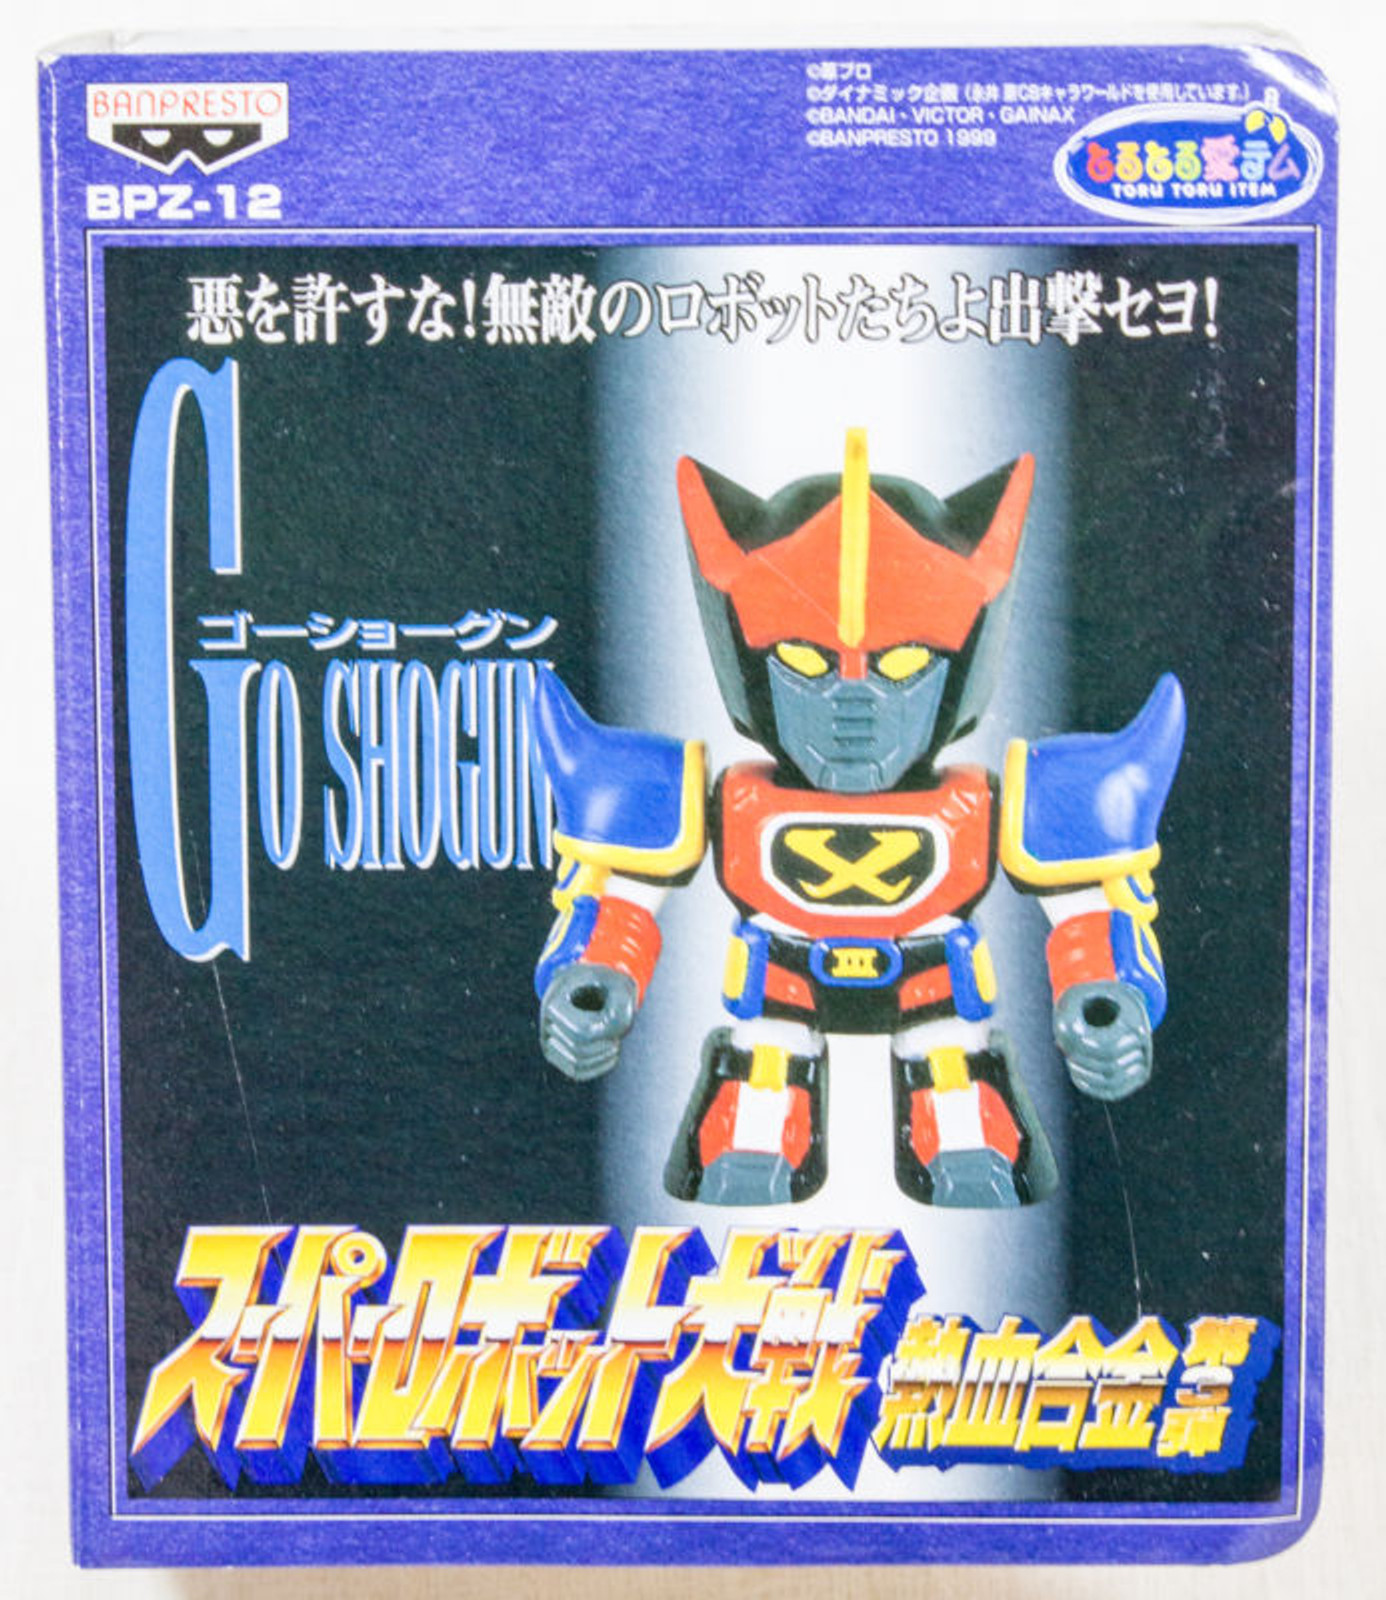 GO SHOGUN Figure Super Robot Wars Nekketsu Gokin Banpresto JAPAN ANIME